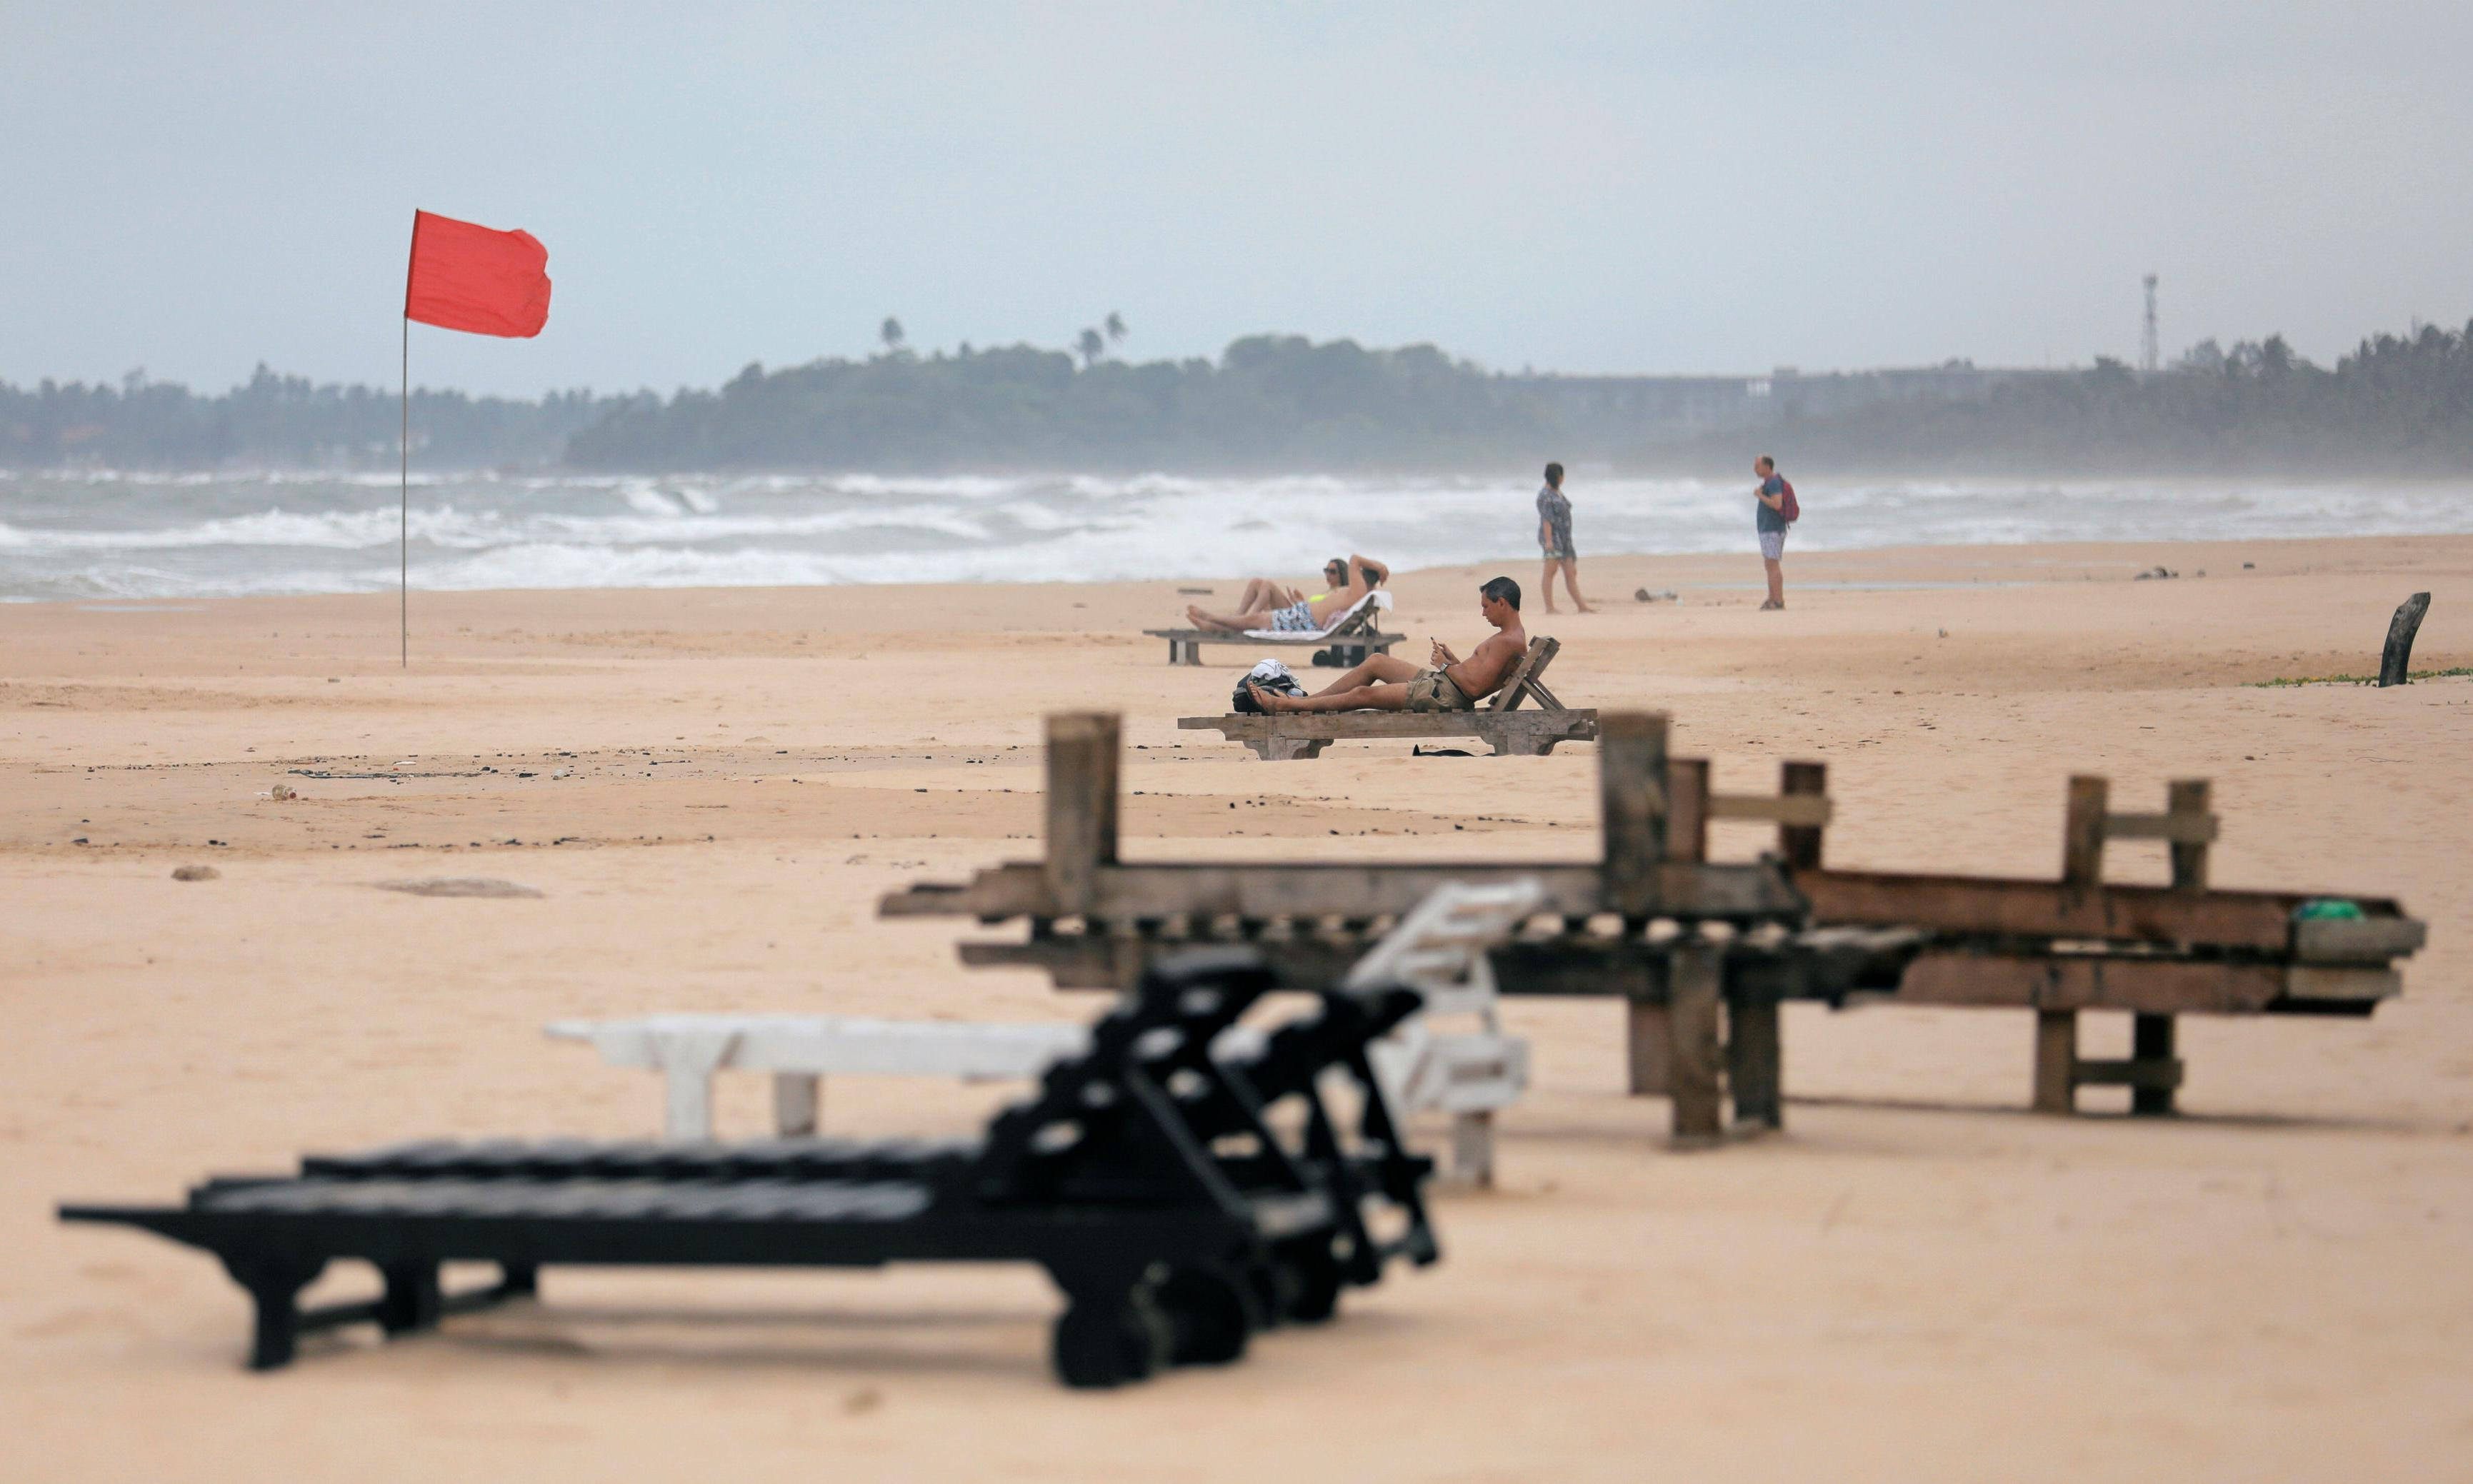 Insurance firm refuses to cover cancelled holiday to Sri Lanka